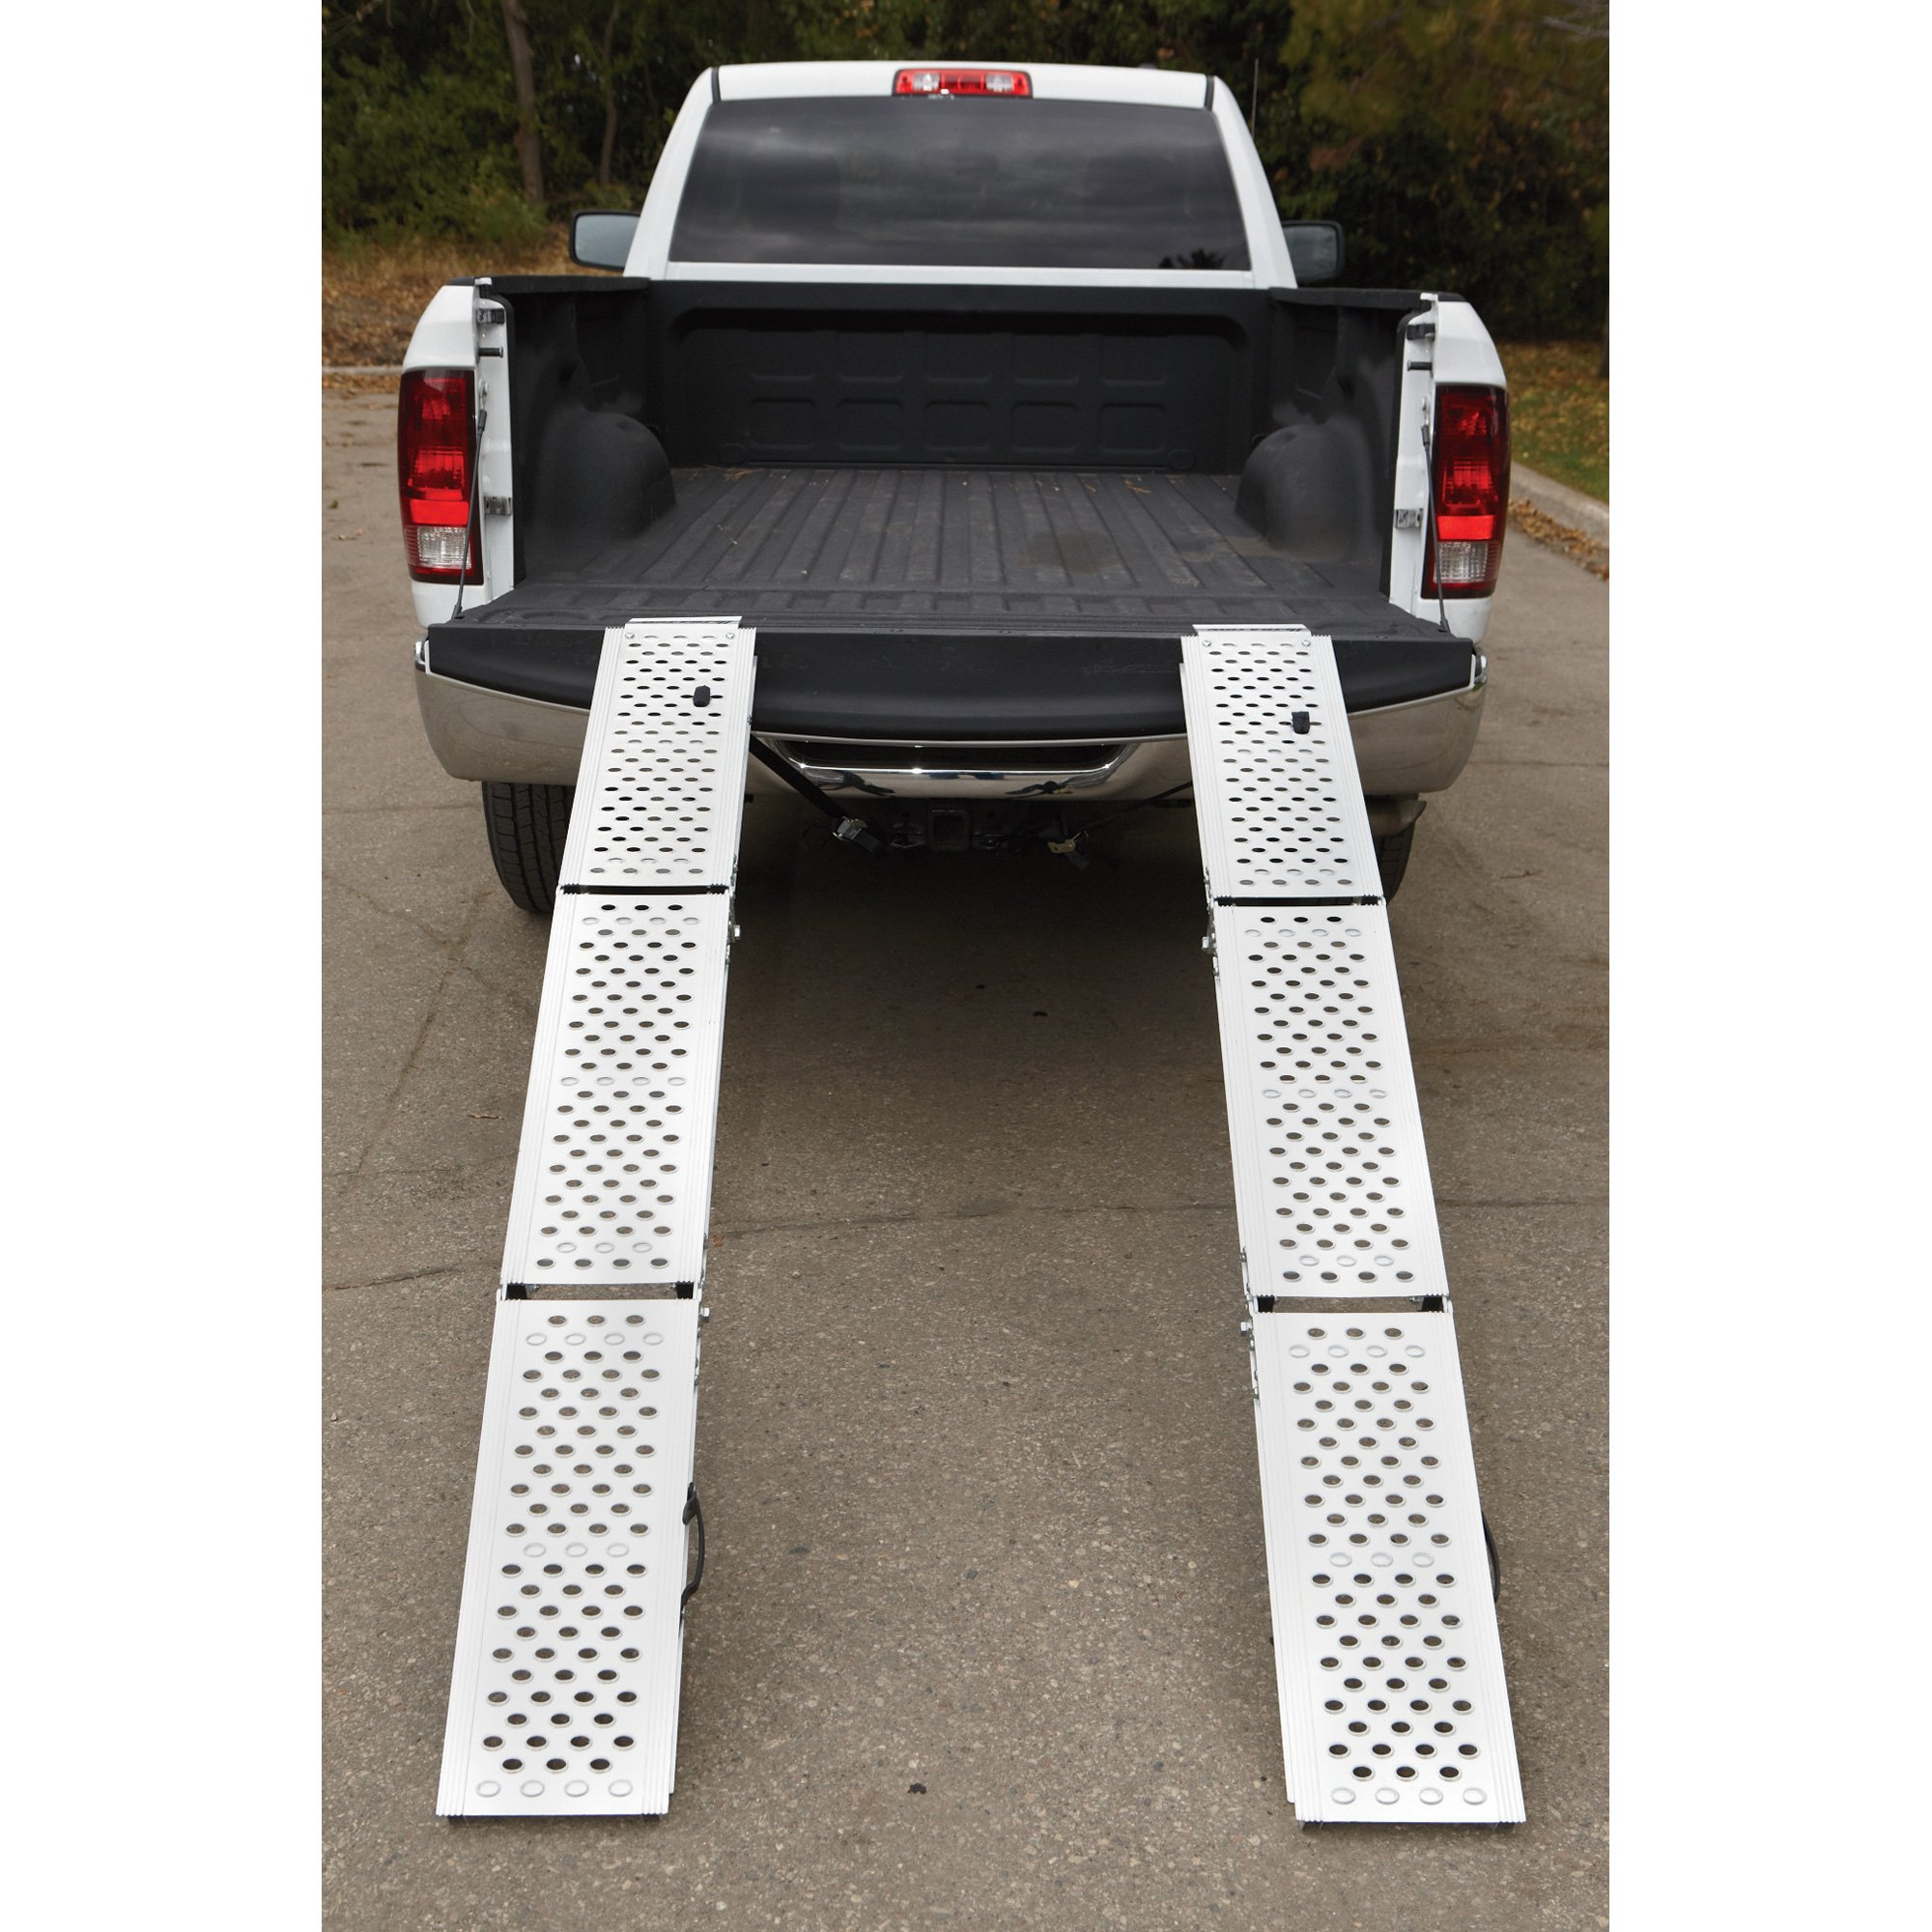 Ultra-Tow Folding Arched Aluminum Ramps - Pair, 76in.L, 1,000-Lb. Total Load Capacity by Ultra-Tow